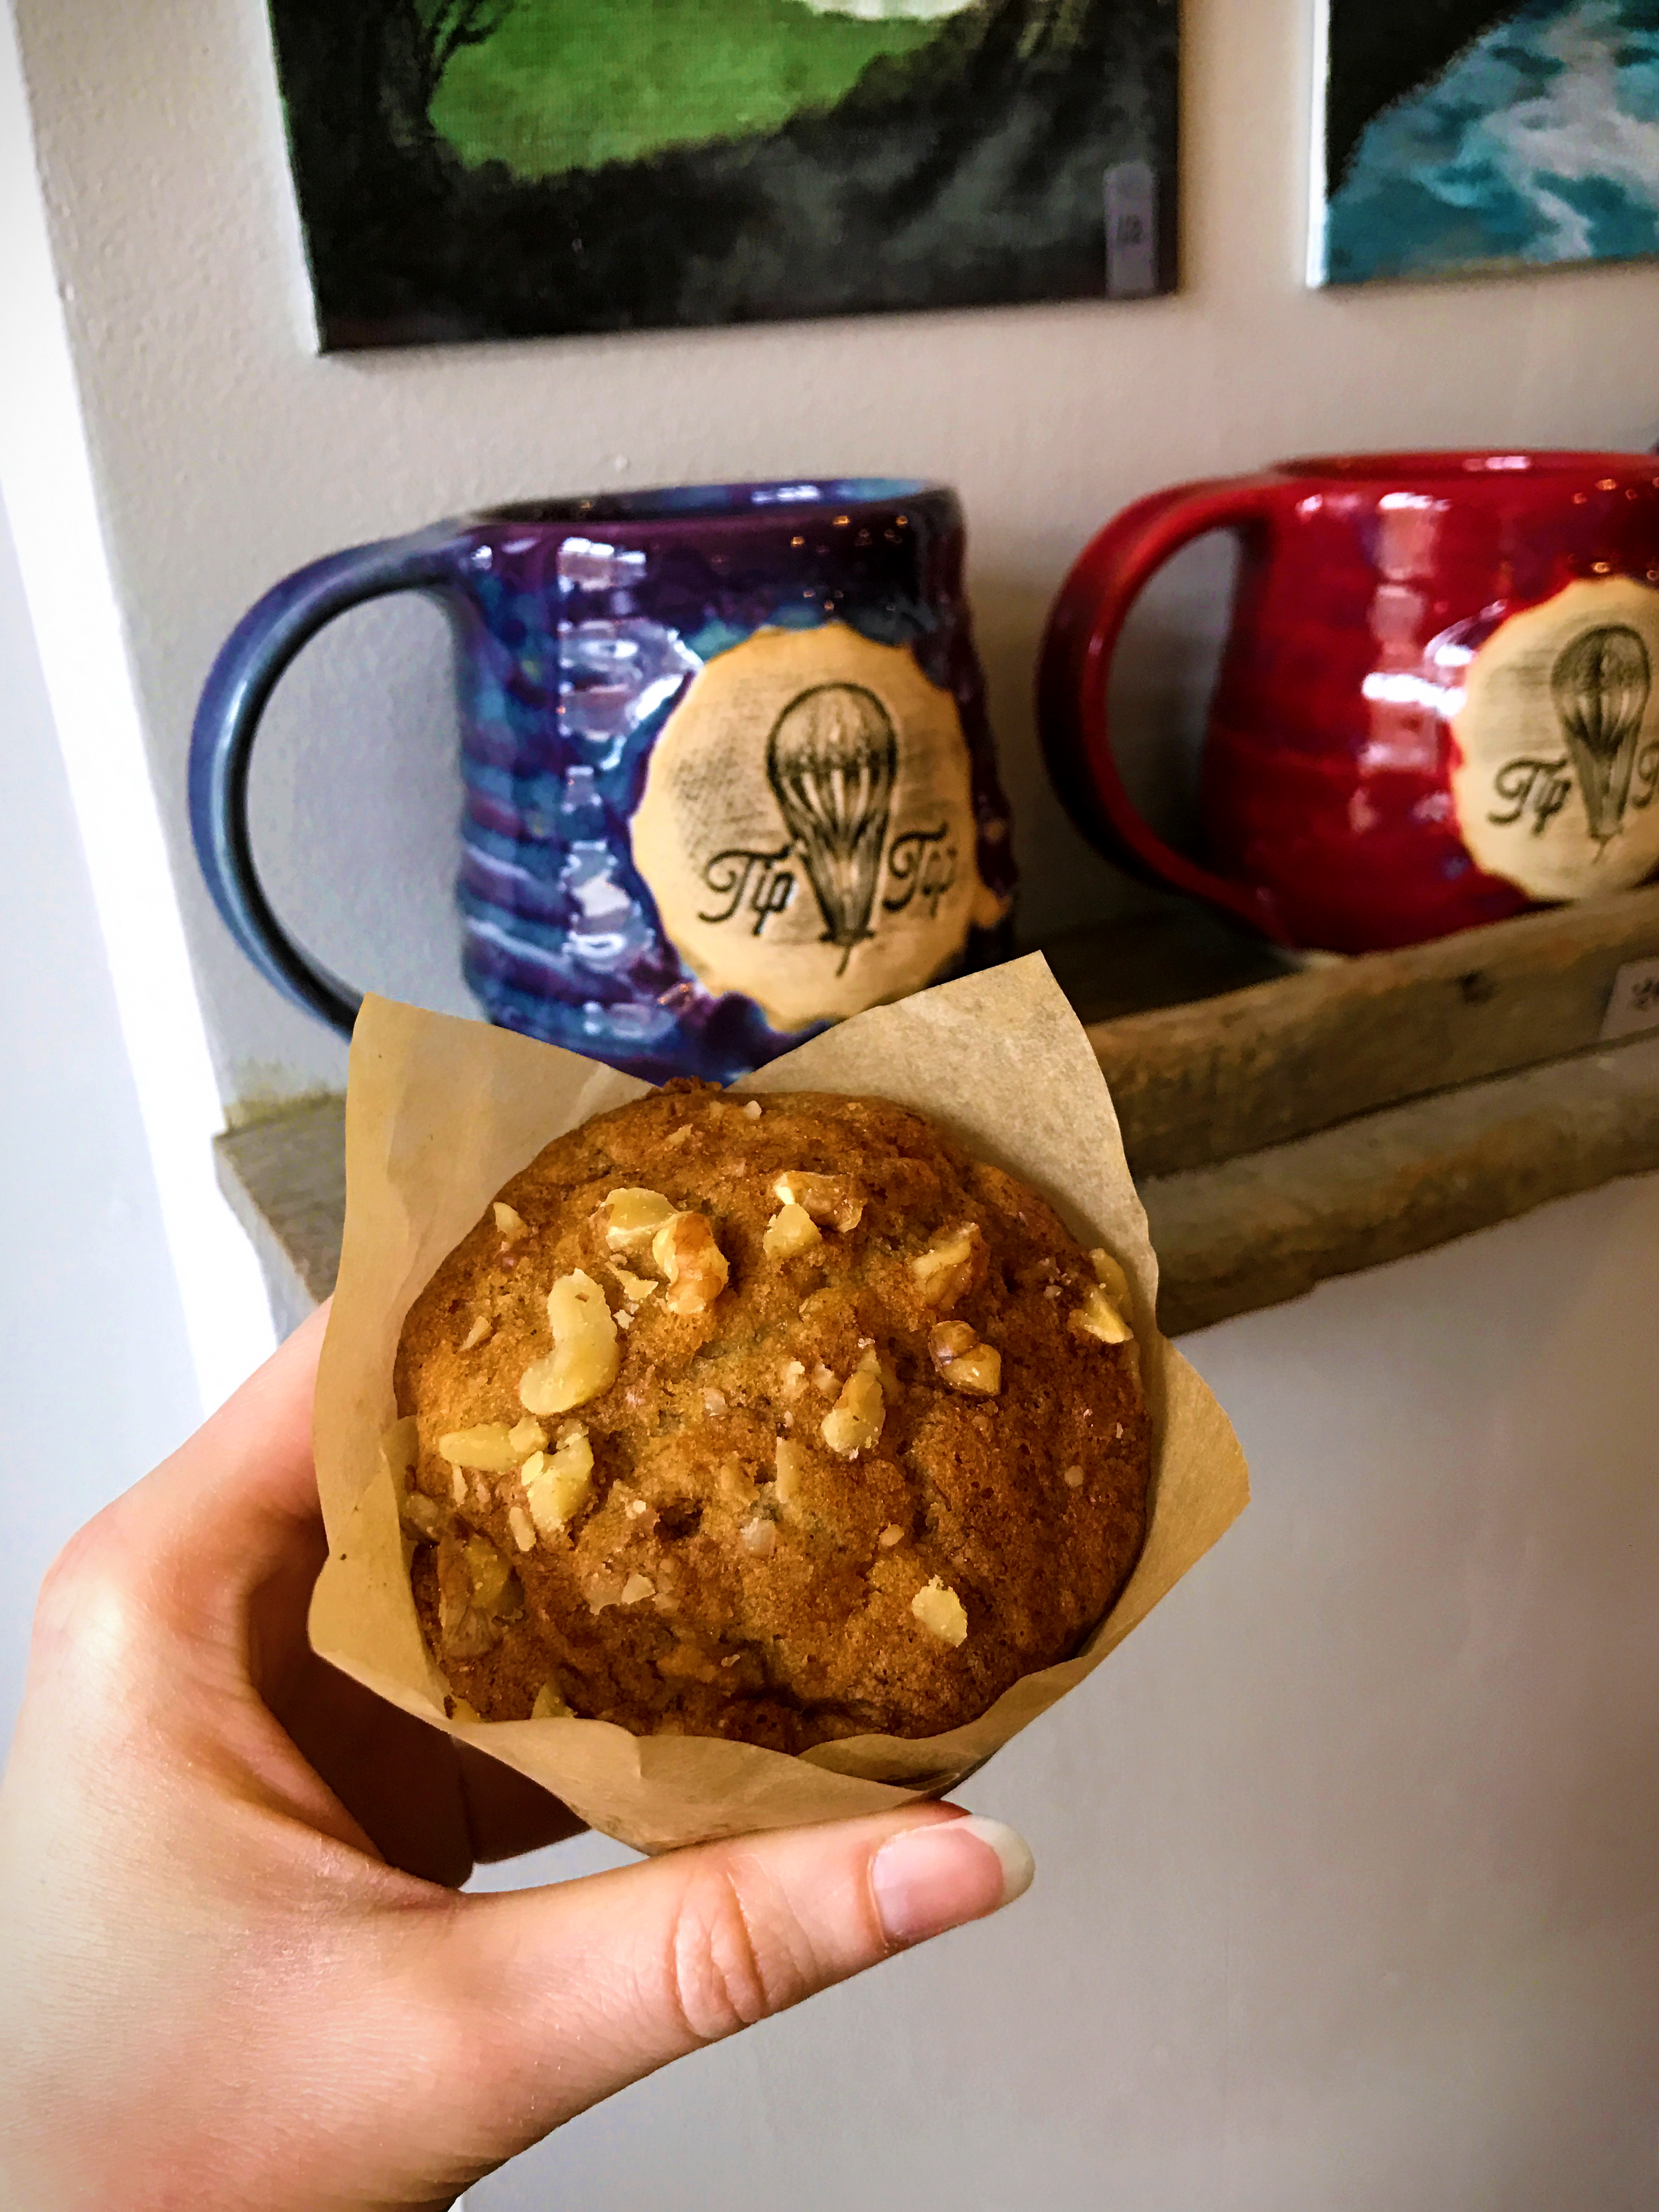 Gluten-free banana nut muffin from Tip Top